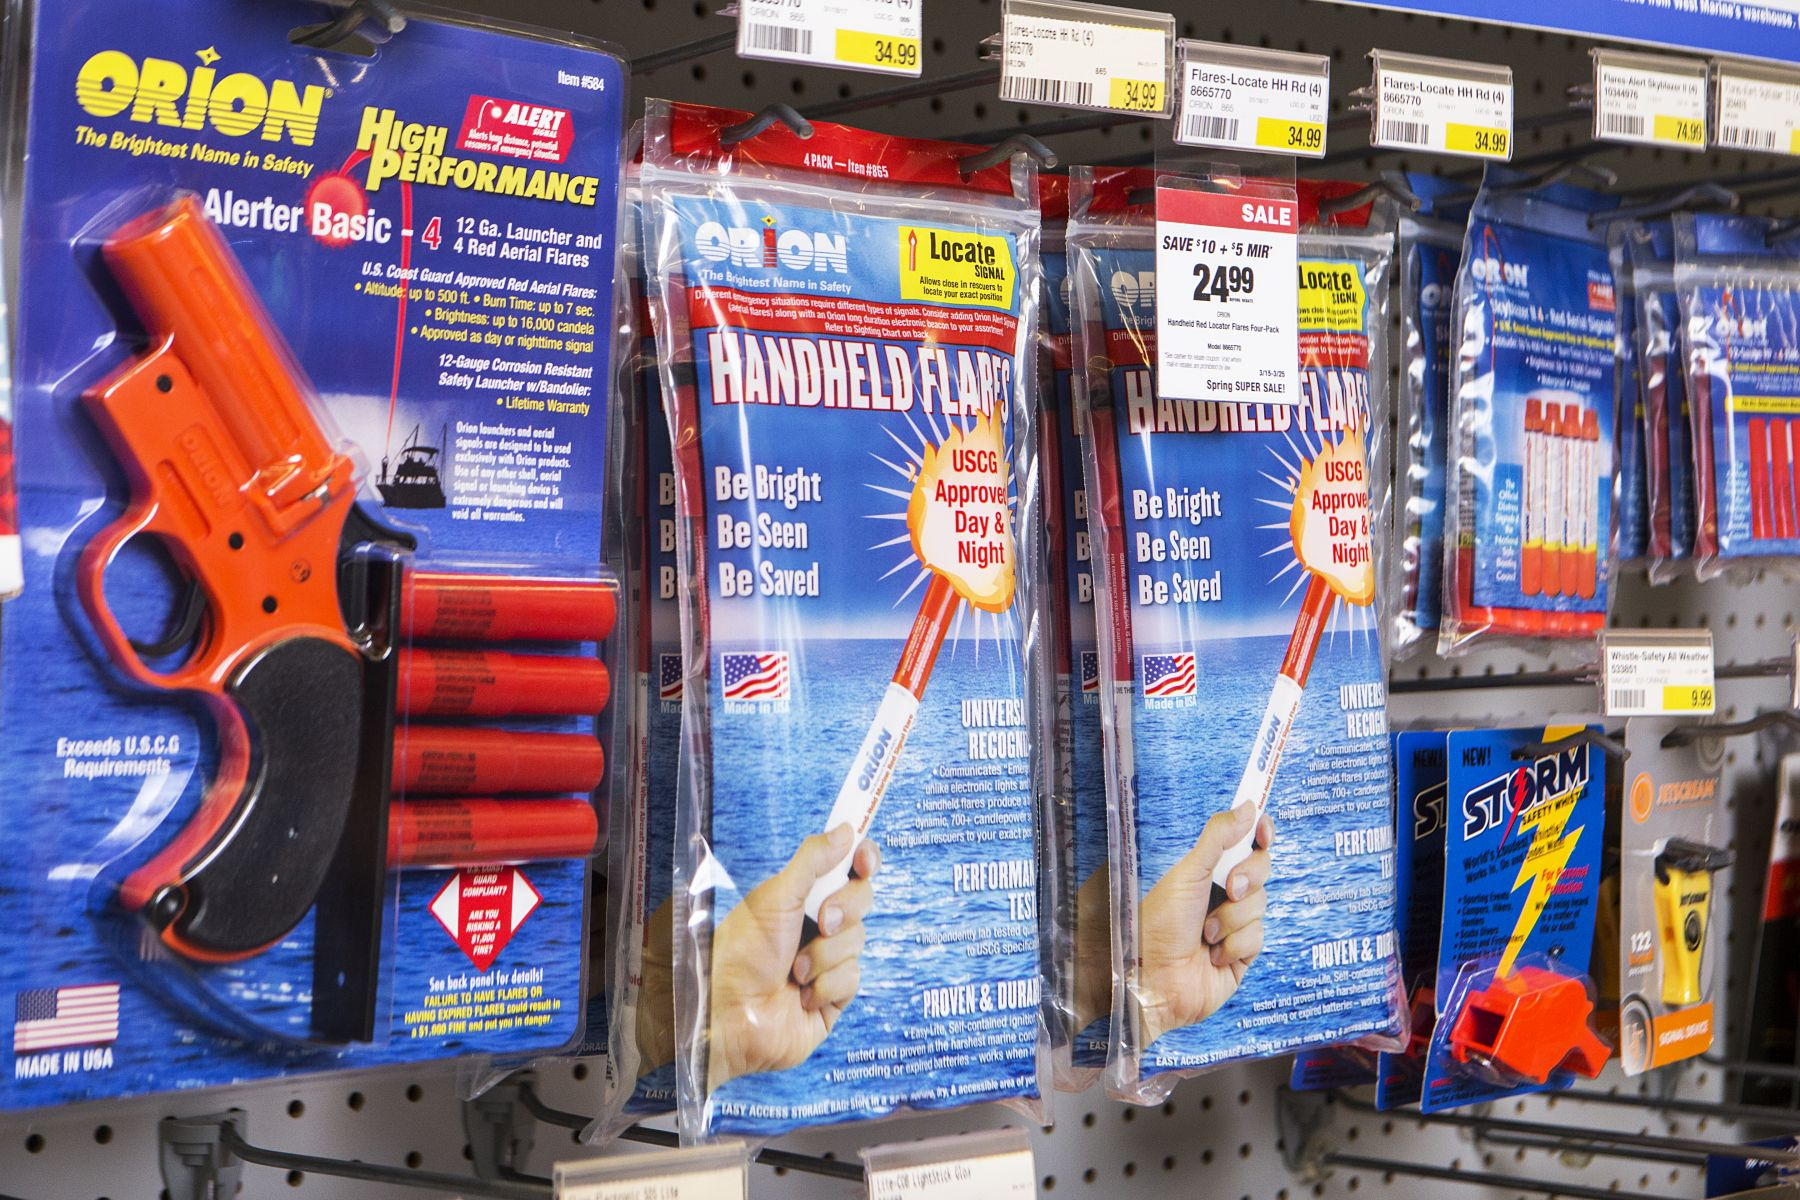 Flares and other safety equipment on the shelves at a retail outlet.